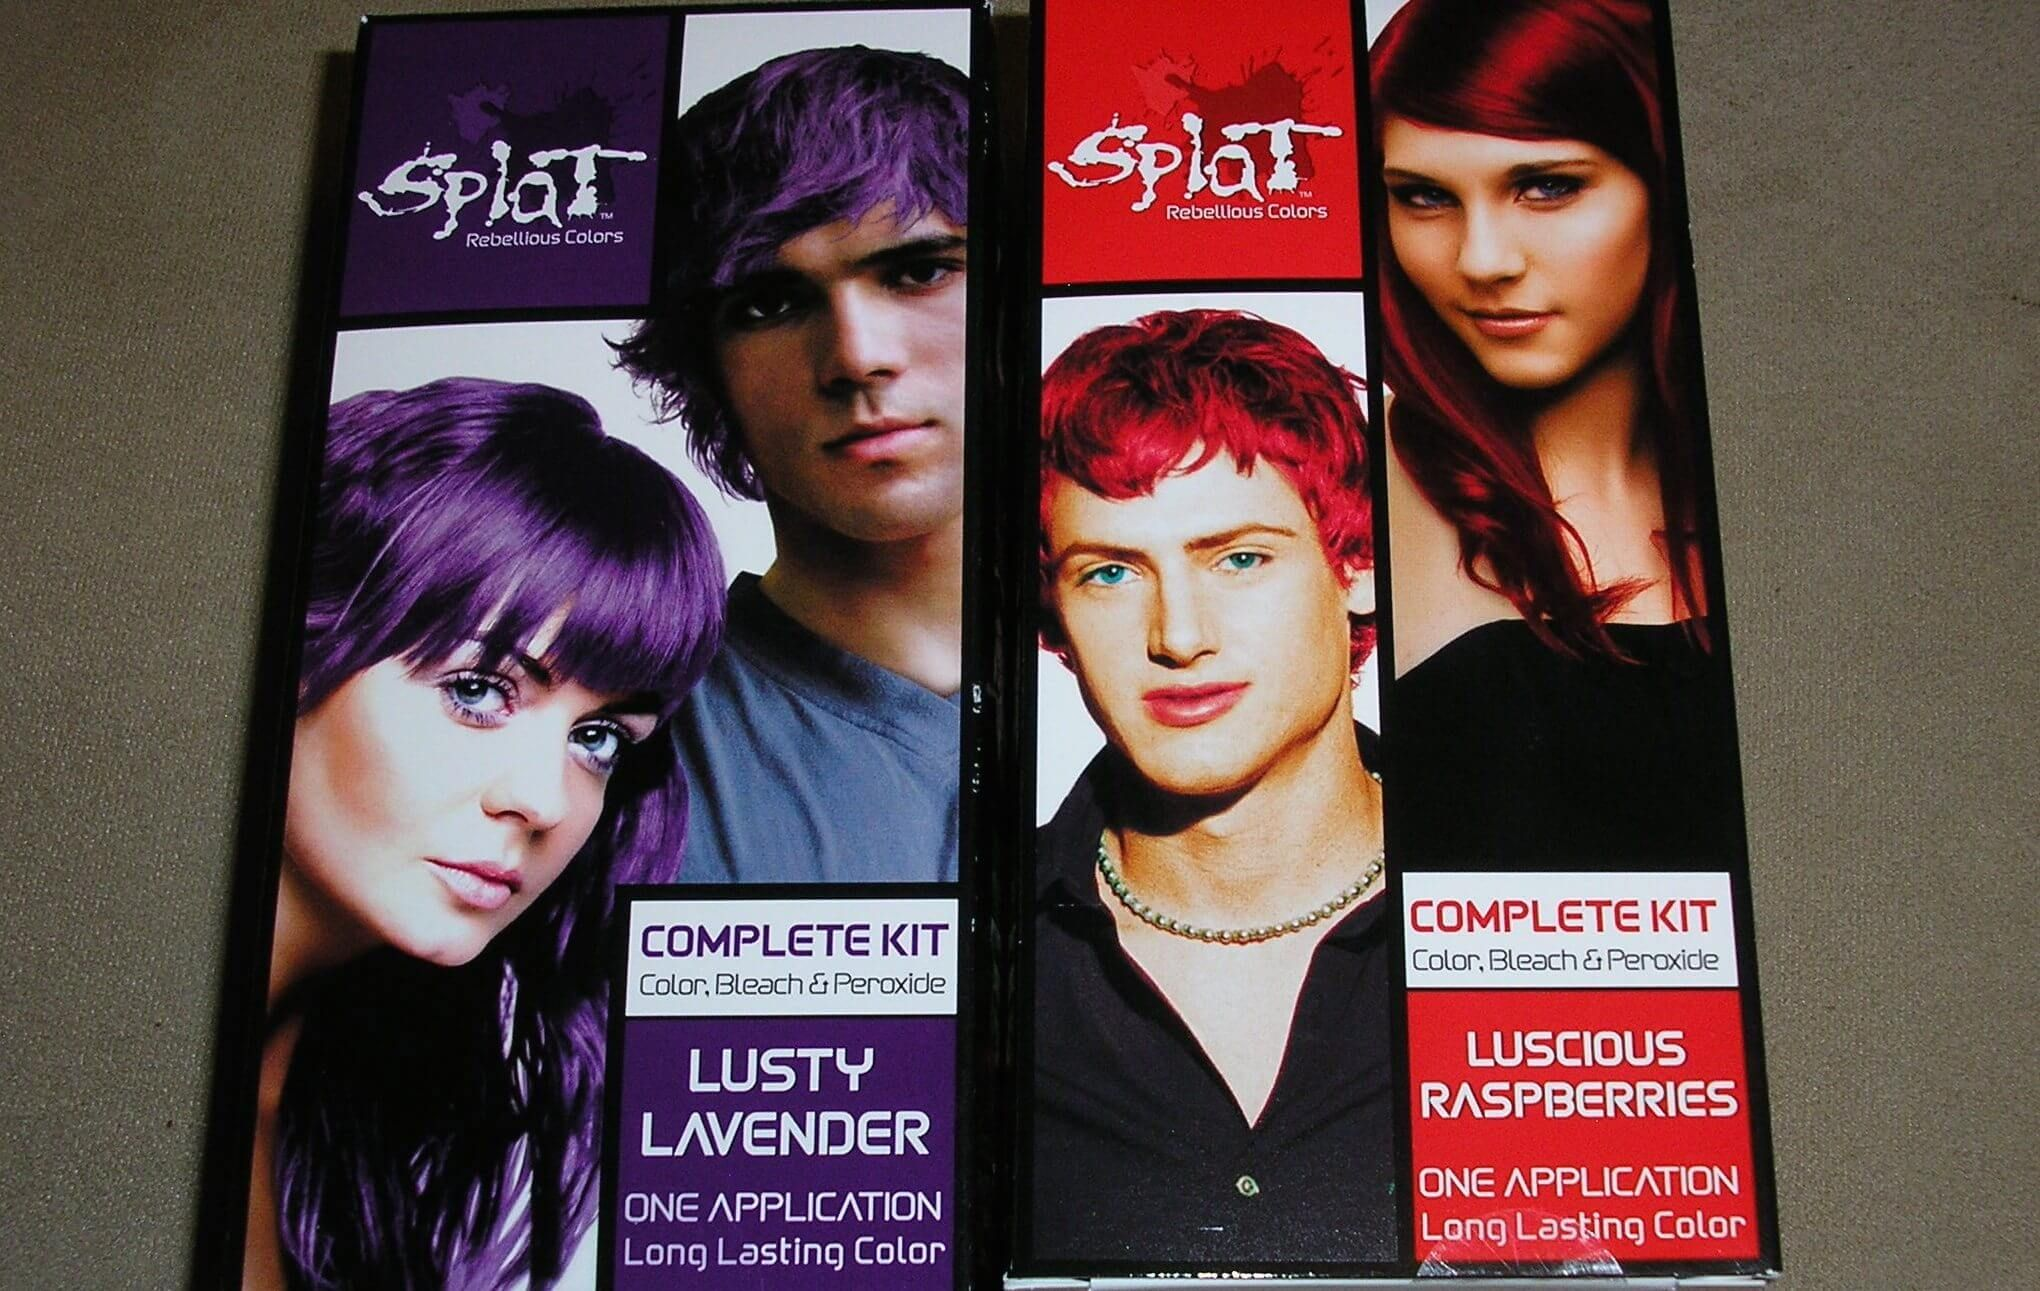 Free Splat Hair Dye Kit From Viewpoints Freebiefriday Coupons Freebiesinthemail Samples Giveaway Freesampl Splat Hair Color Splat Hair Dye Dyed Red Hair